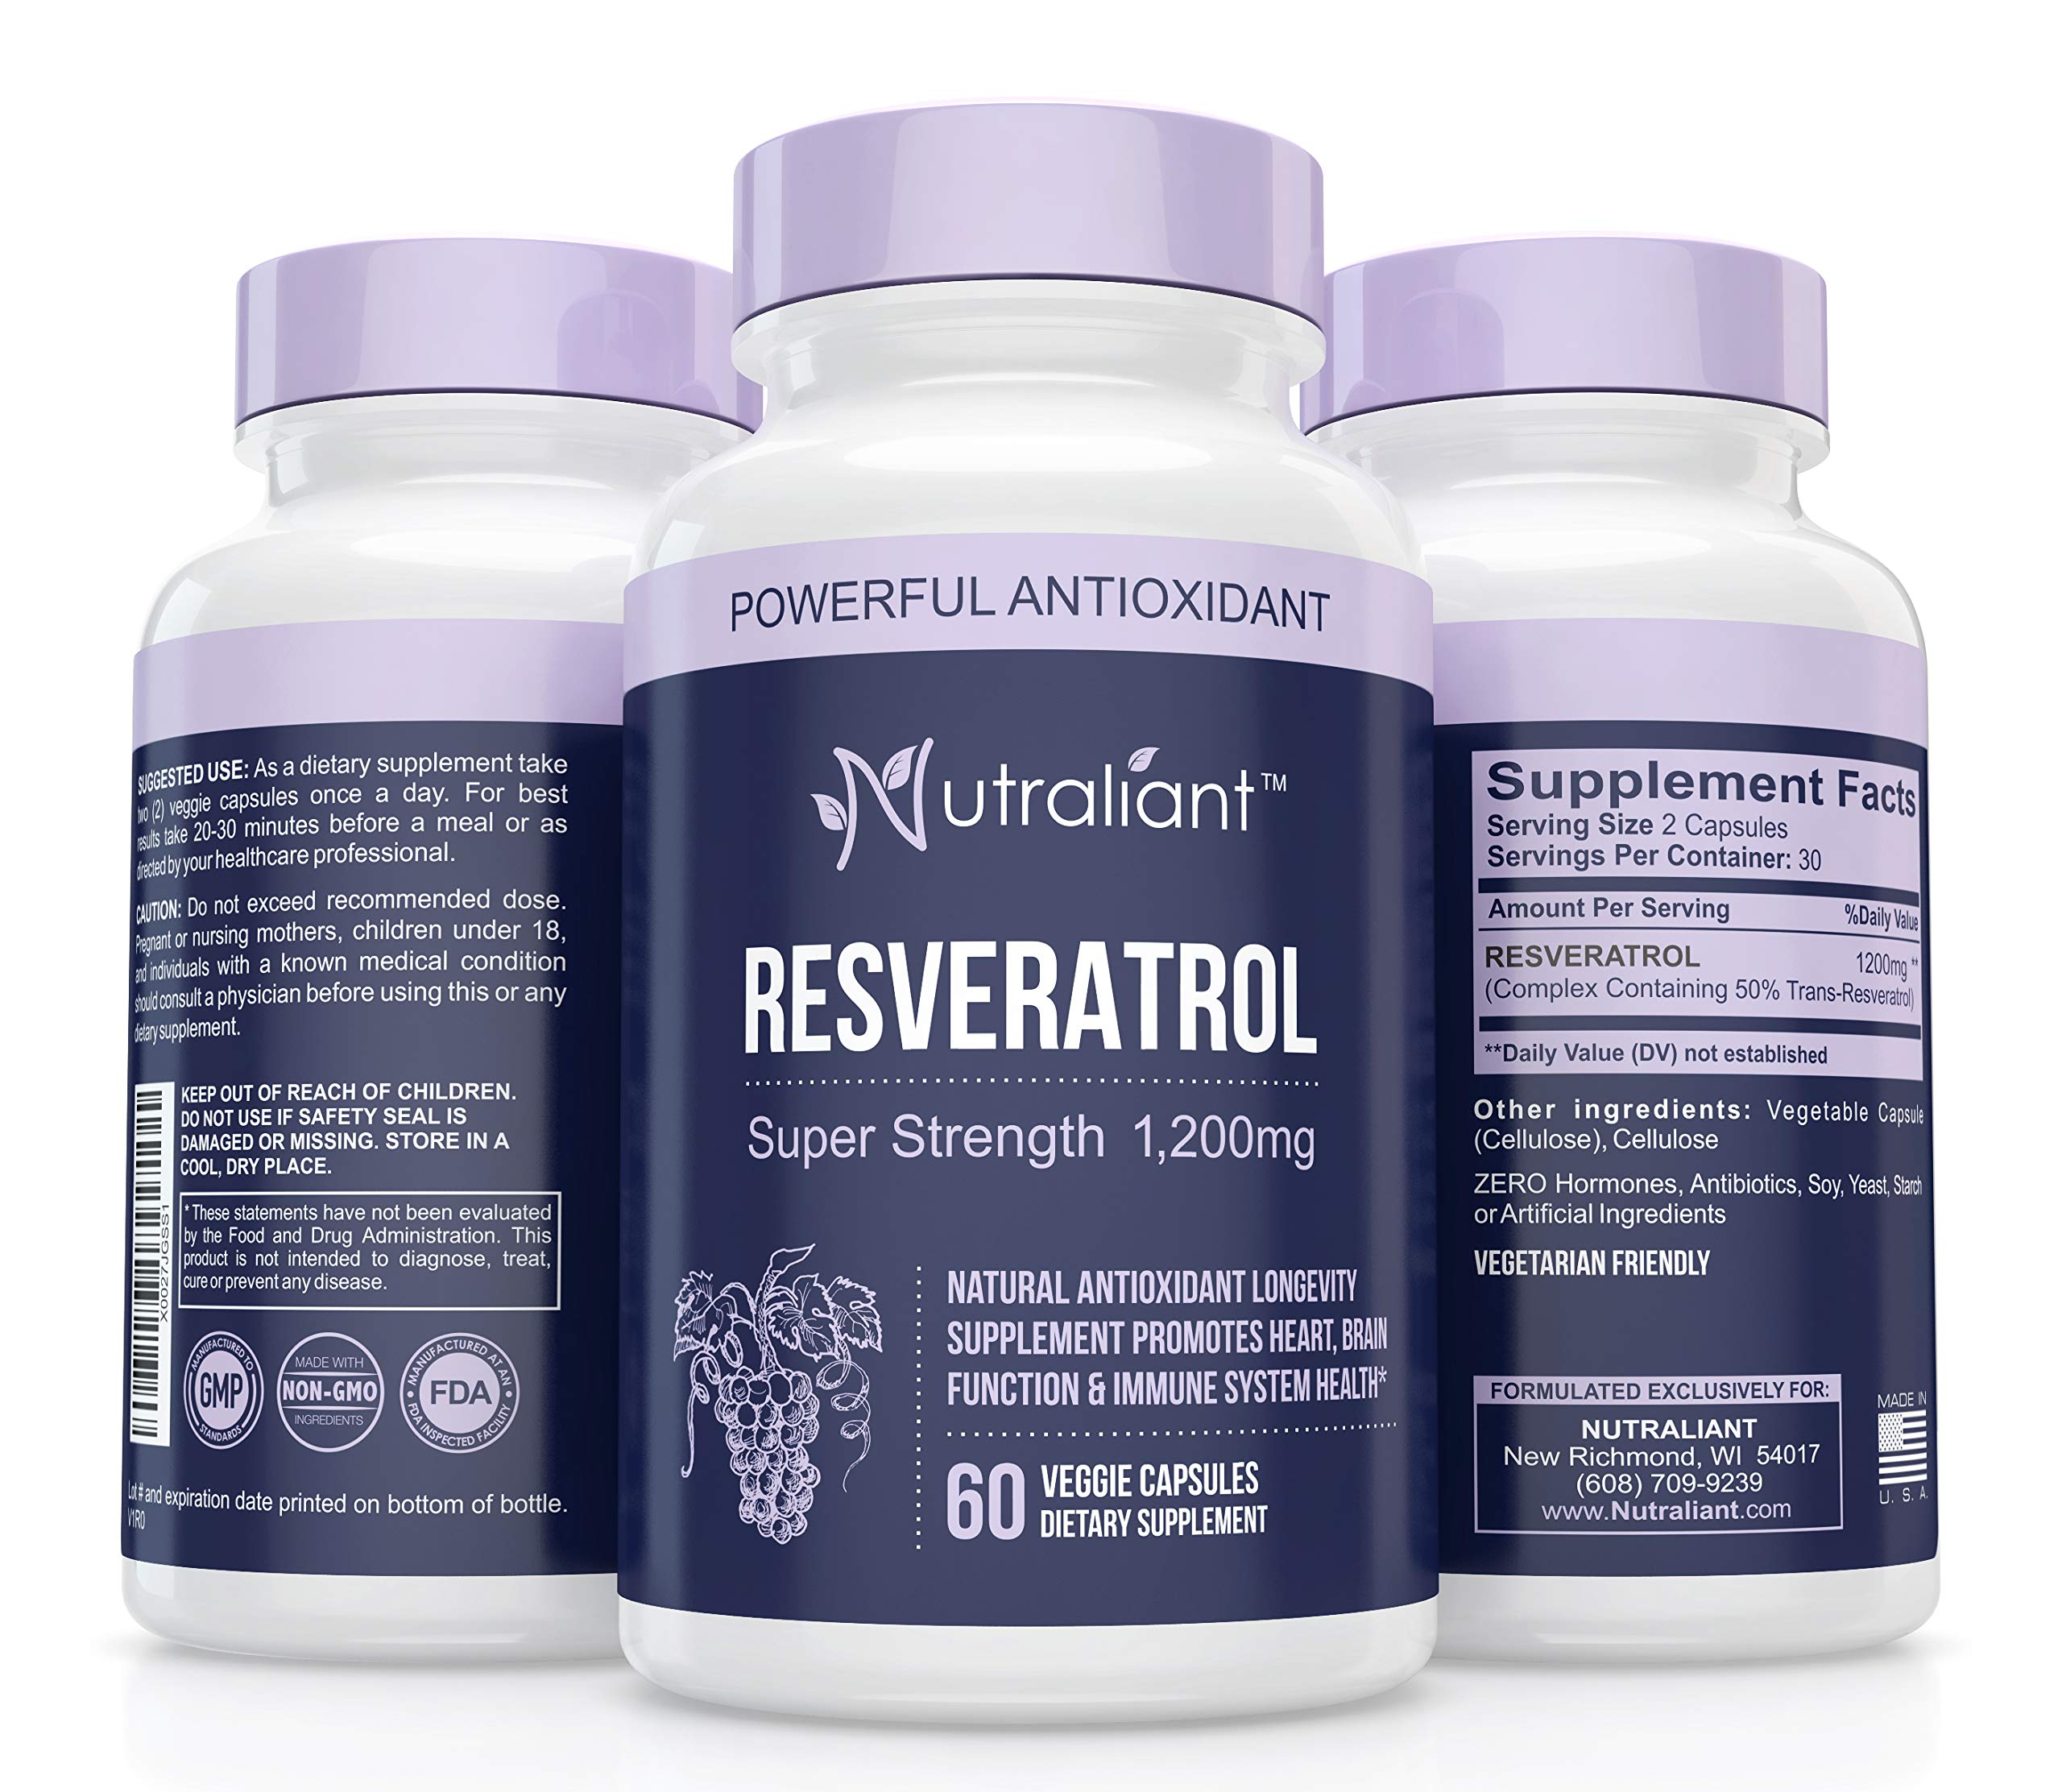 Resveratrol 1200mg Maximum Strength Supplement - Trans Resveratrol Natural Antioxidant to Support Immune, Heart, Weight Loss & Brain Health - Trans-Resveratrol Pills for Anti-Aging 60 Veggie Capsules by Nutraliant